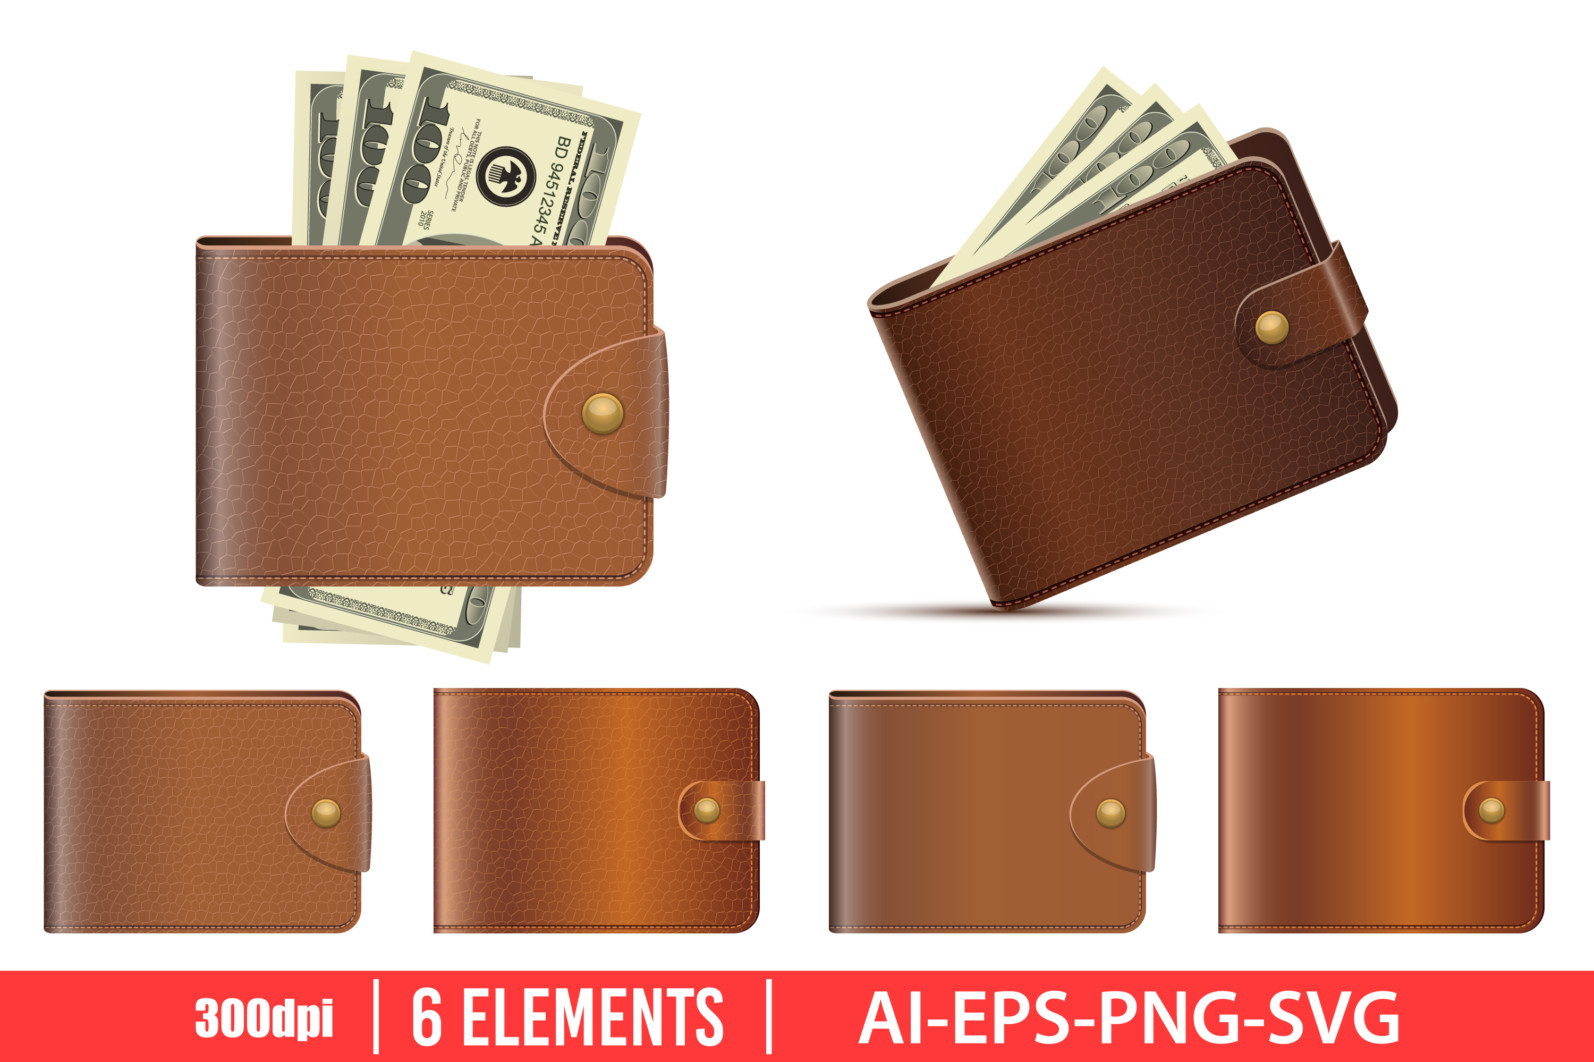 Leather wallet clipart vector design illustration. Leather wallet set. Vector Clipart Print - LEATHER WALLET scaled -